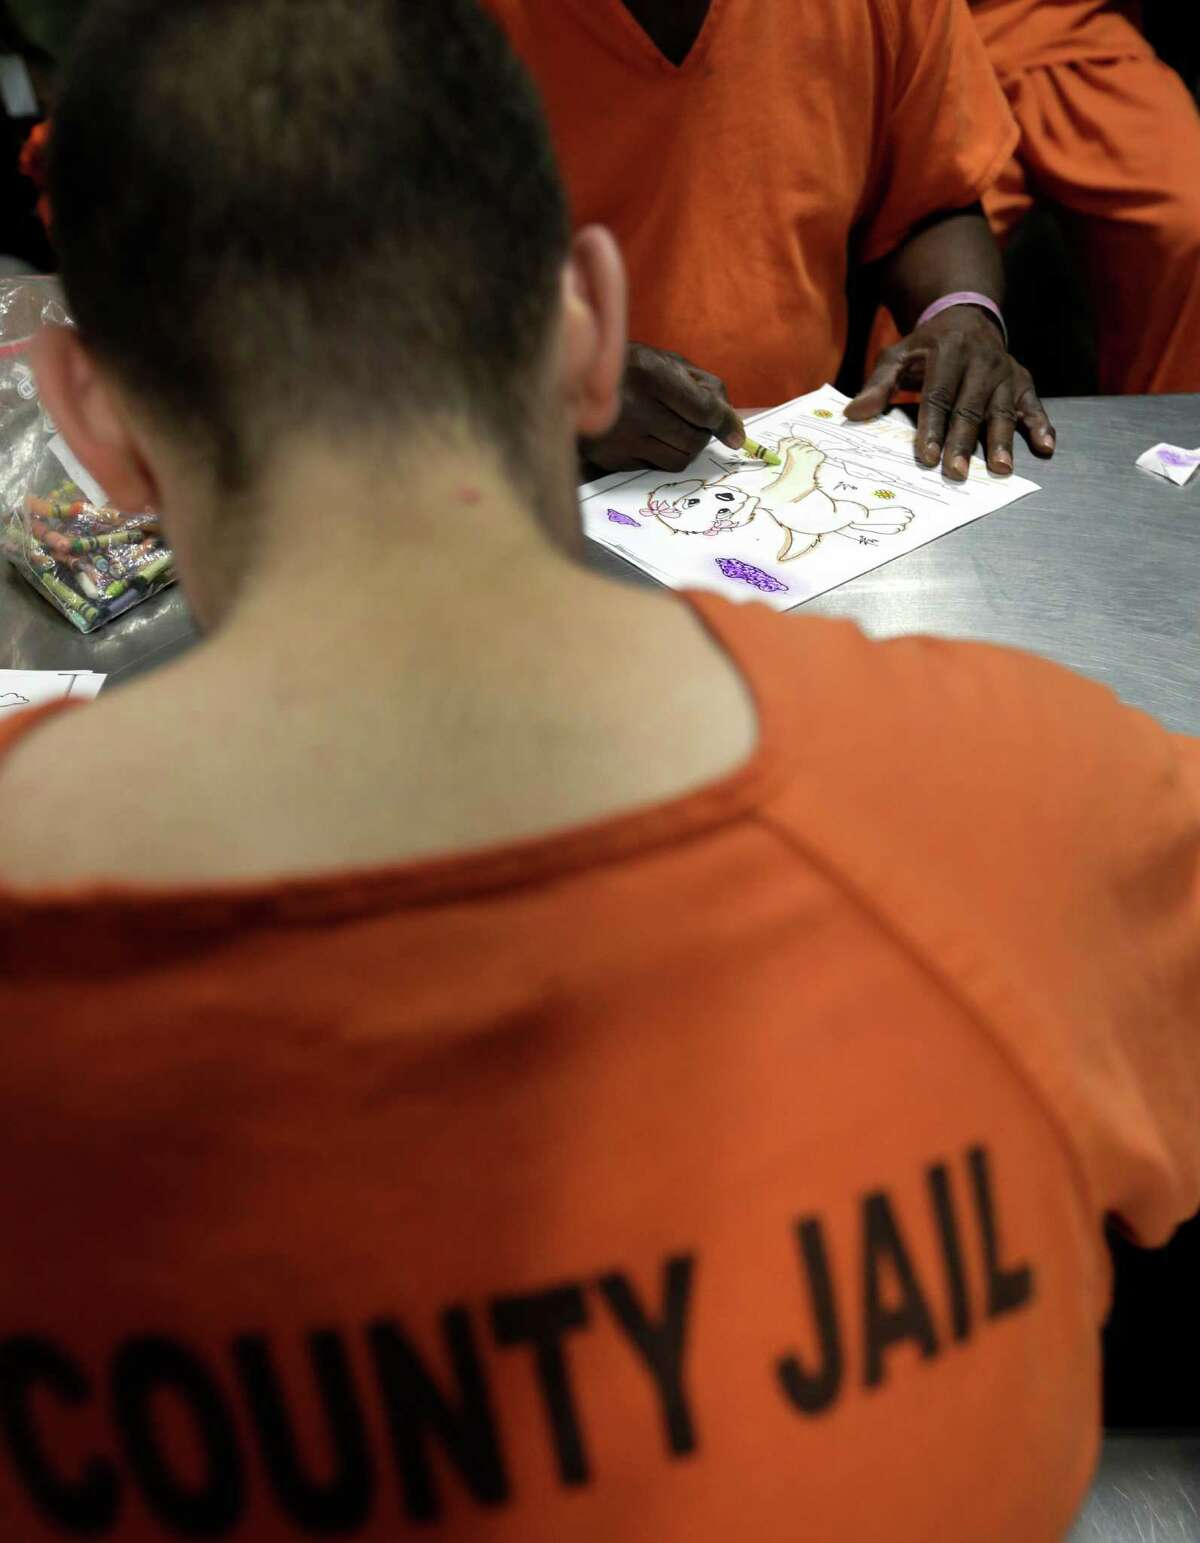 Too many Houstonians have been arrested, locked up and denied a hearing to determine if there was probable cause for the initial arrest, according to the Texas Fair Defense Project and the Civil Rights Corps. (AP File Photo)